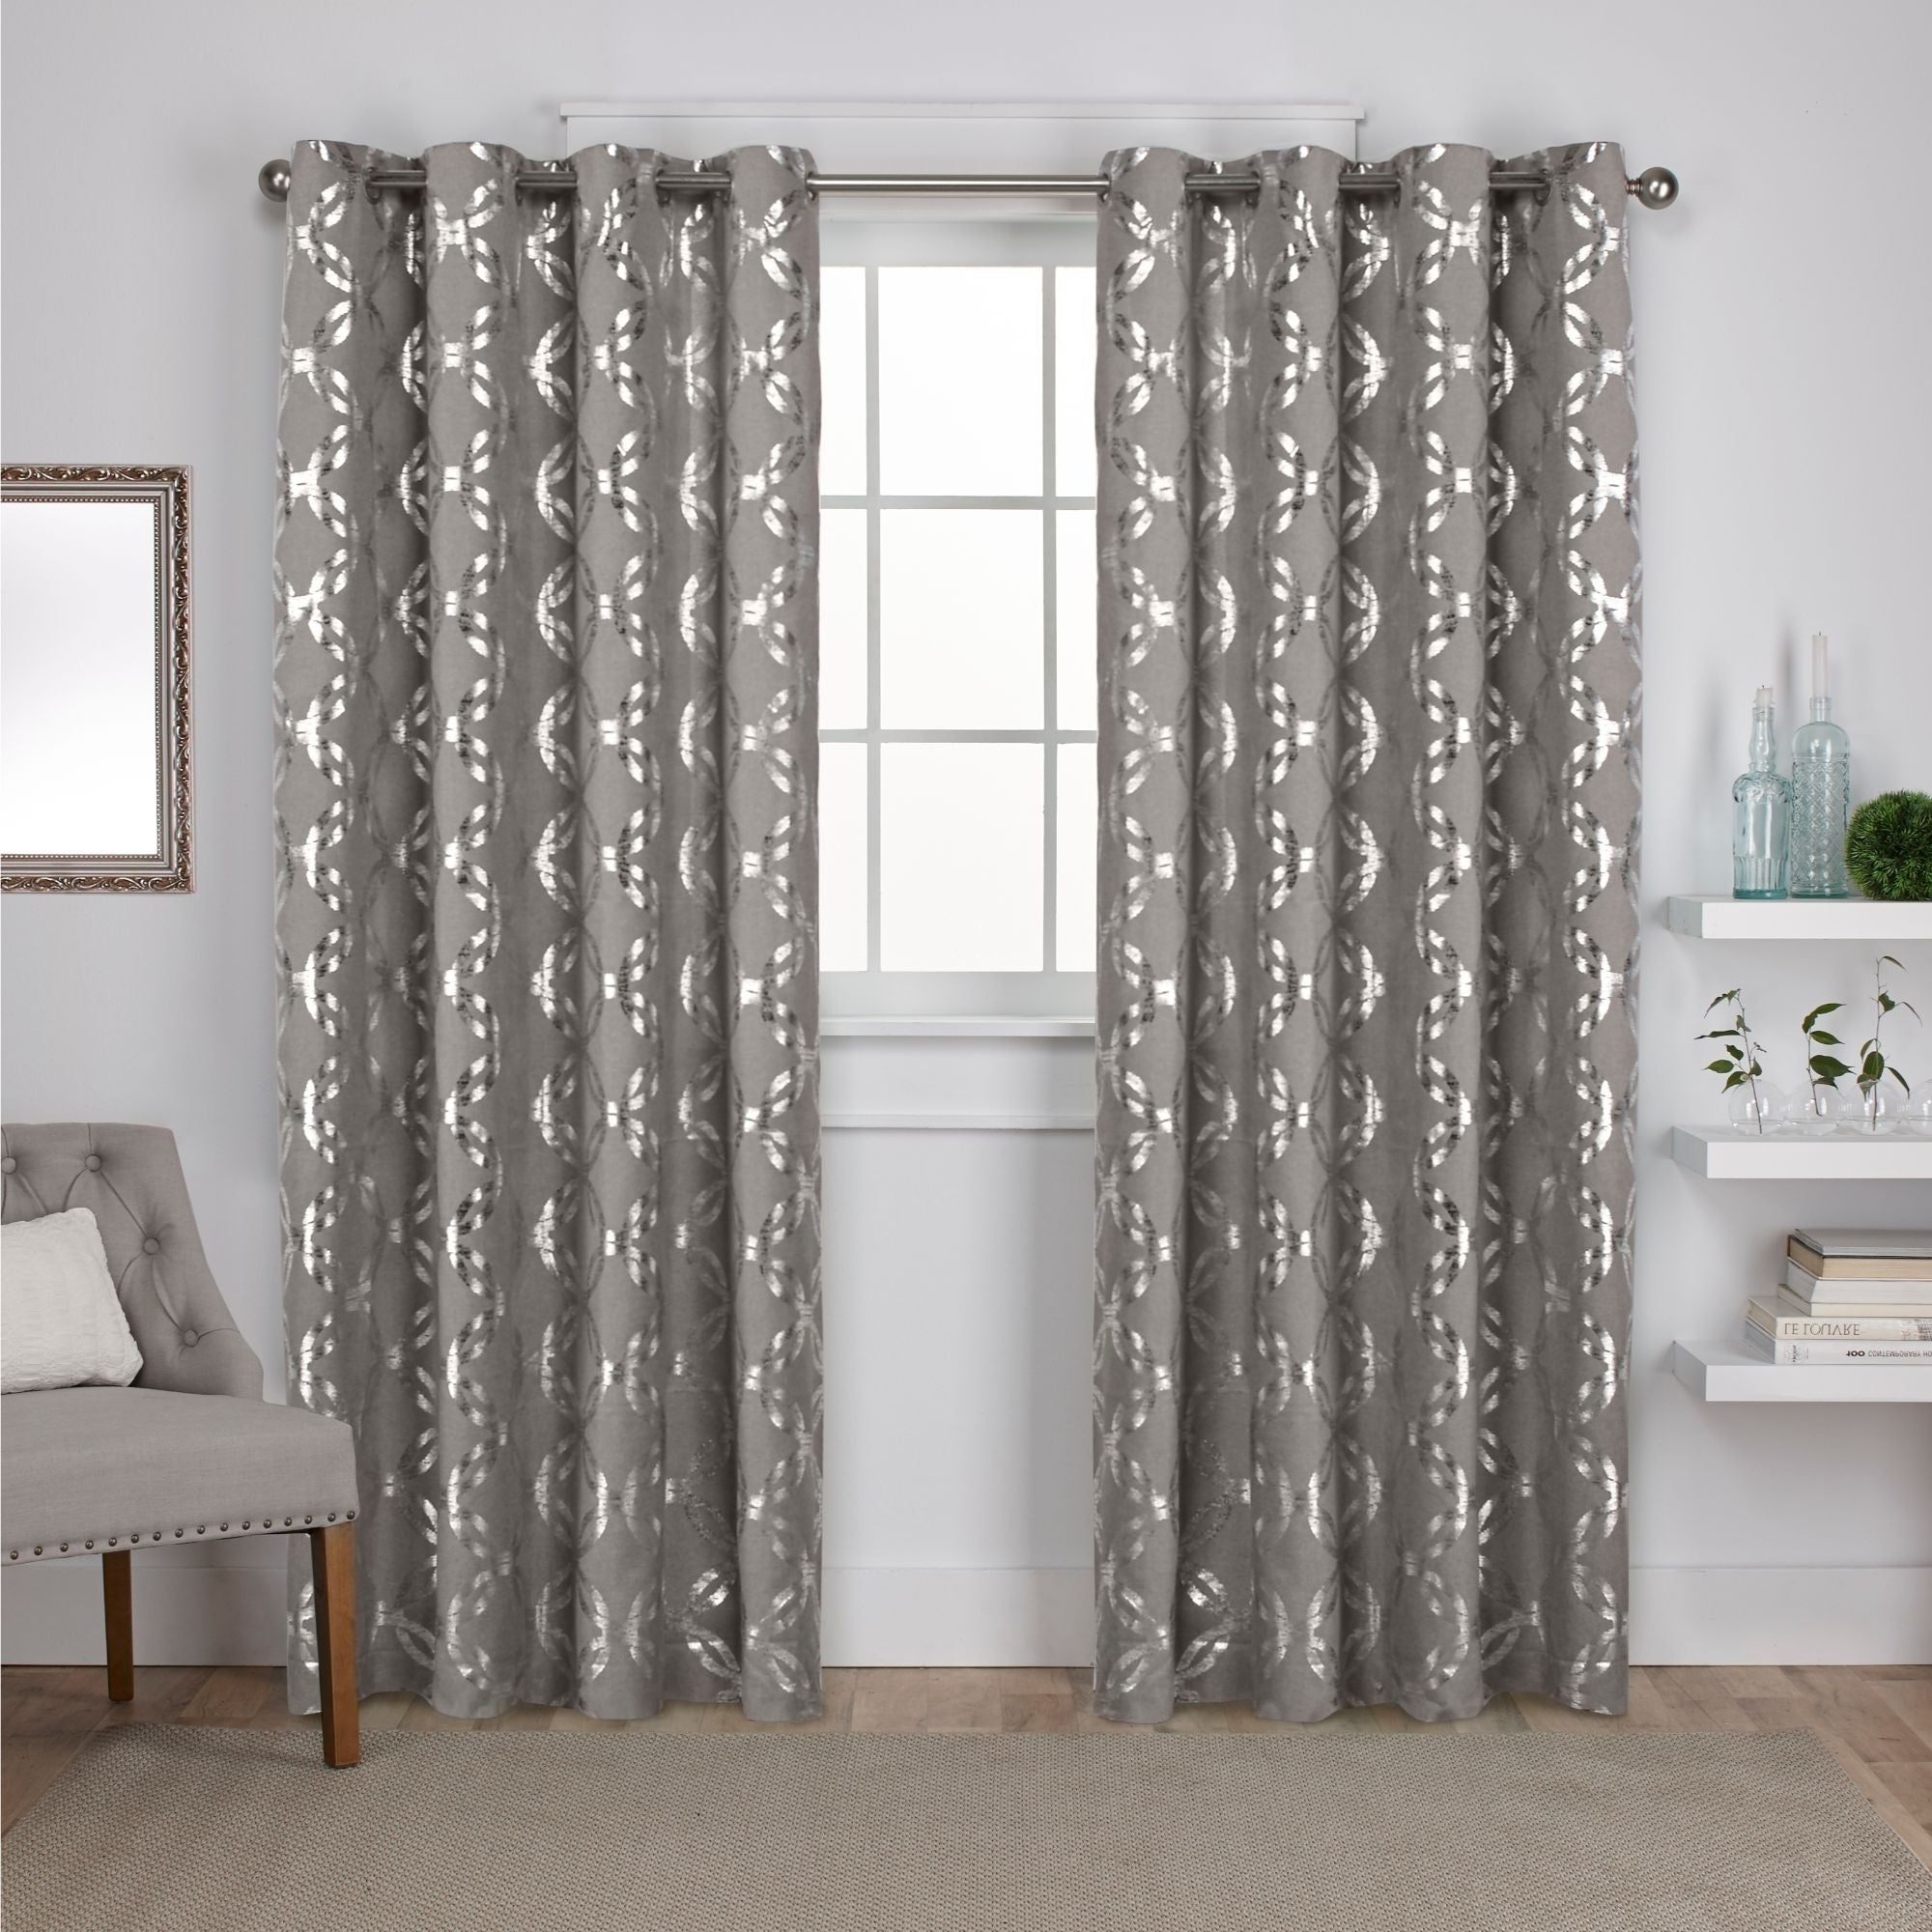 The Curated Nomad Duane Jacquard Grommet Top Curtain Panel Pairs Throughout Most Recent The Curated Nomad Sloat Metallic Geometric Grommet Top Curtain Panel Pair (View 5 of 21)